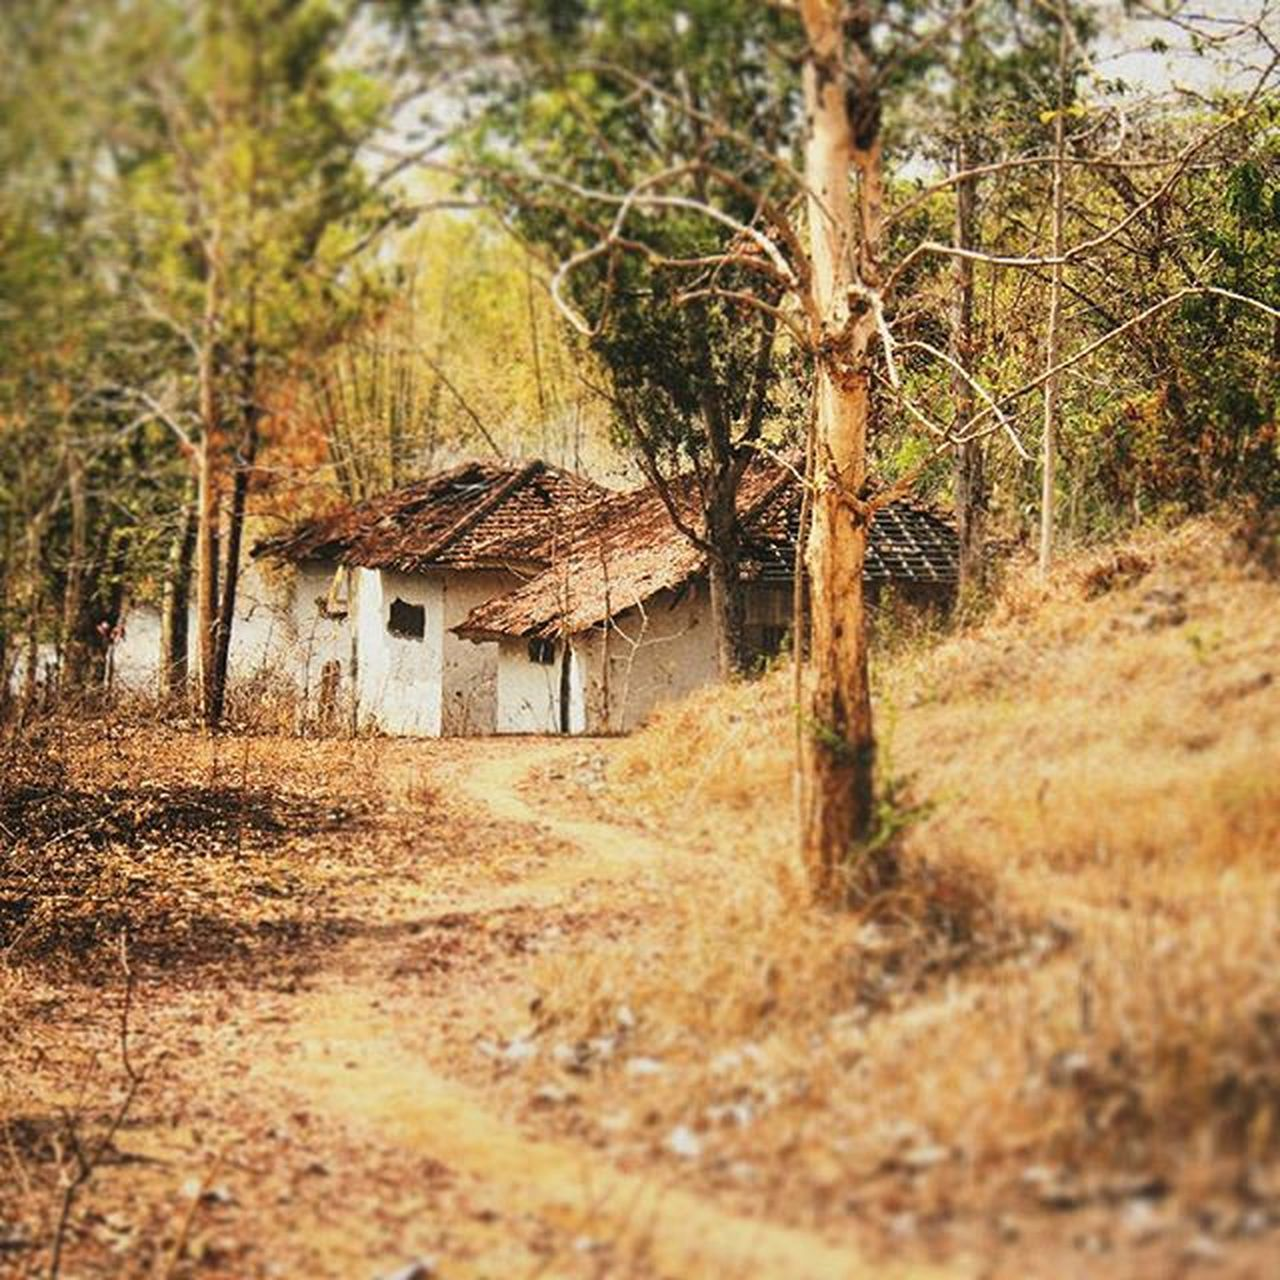 architecture, built structure, house, tree, no people, day, outdoors, building exterior, nature